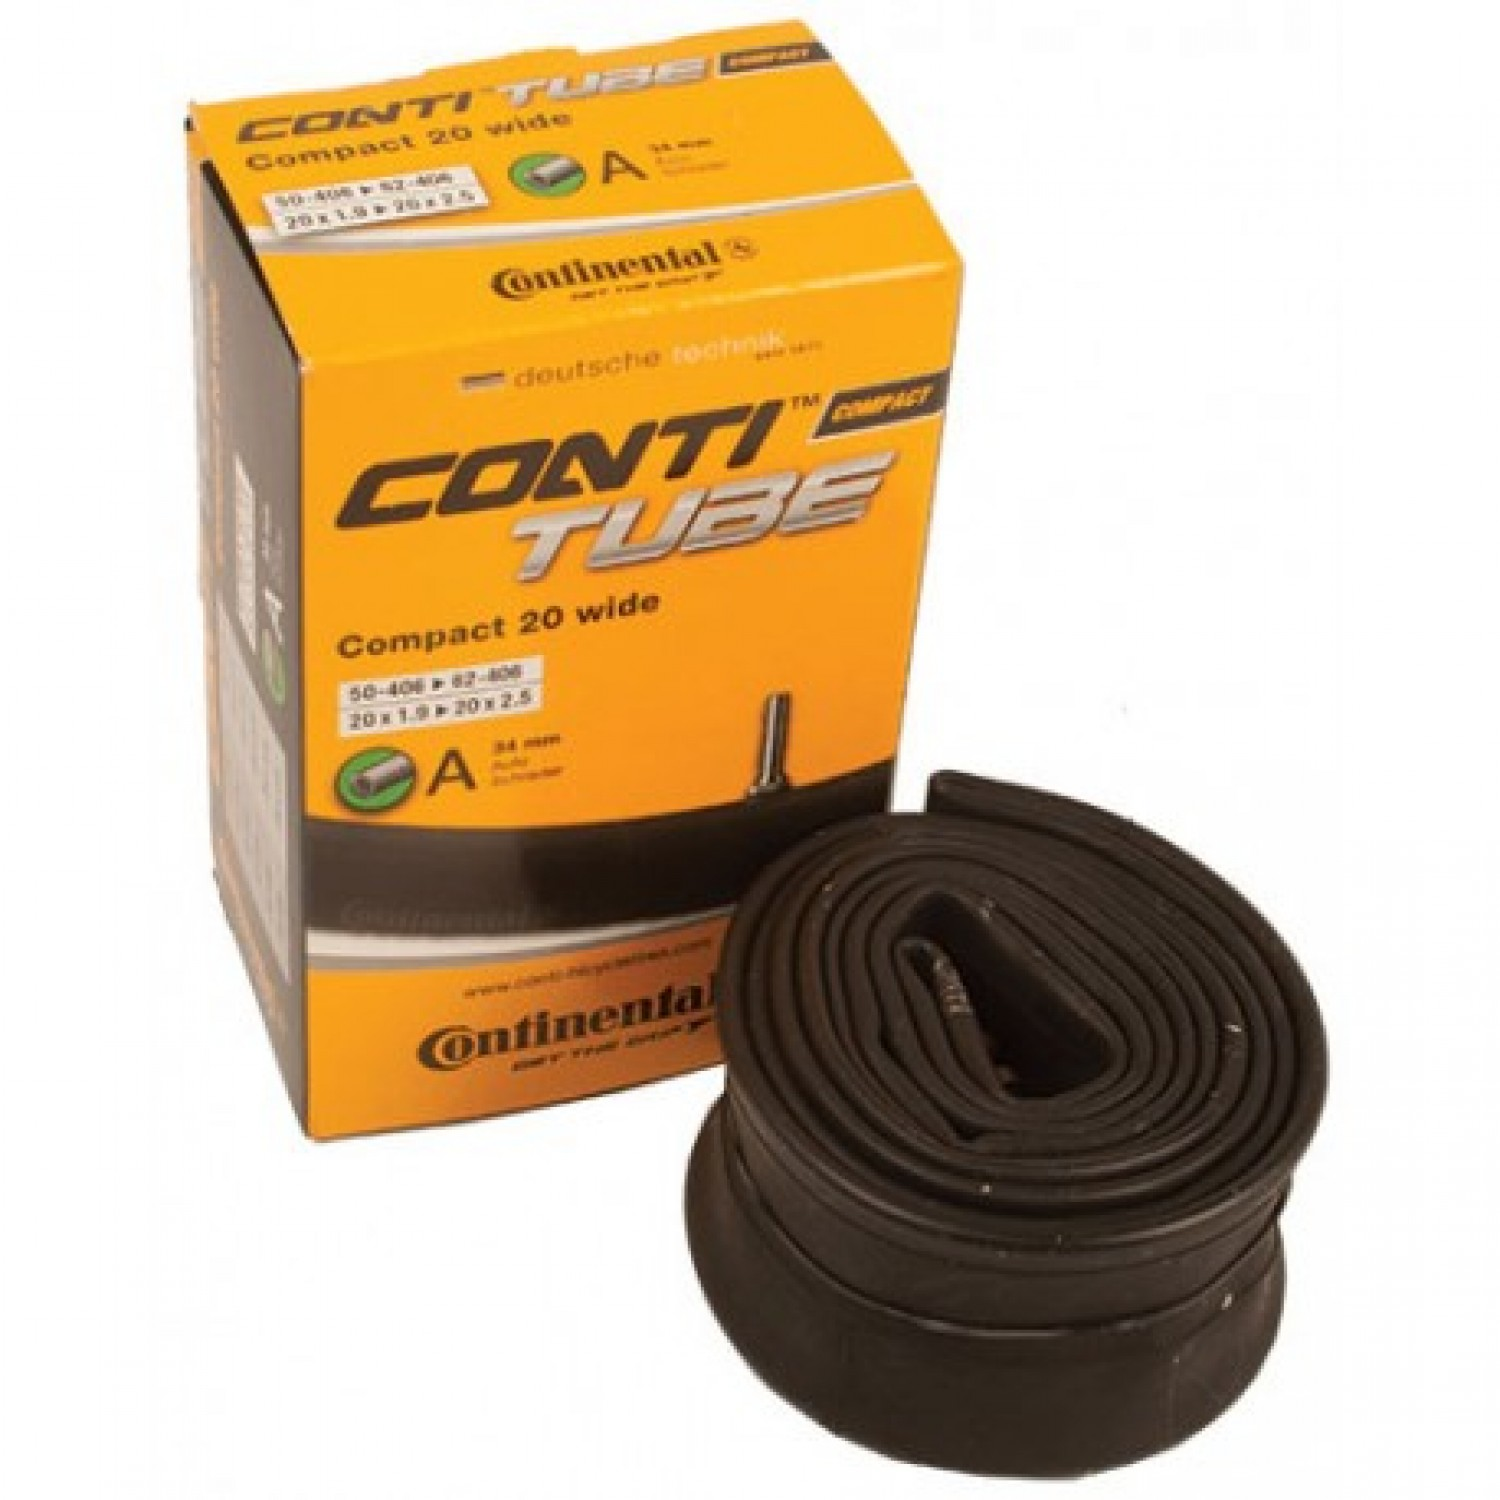 "Continental Compact 20"" Wide A34"